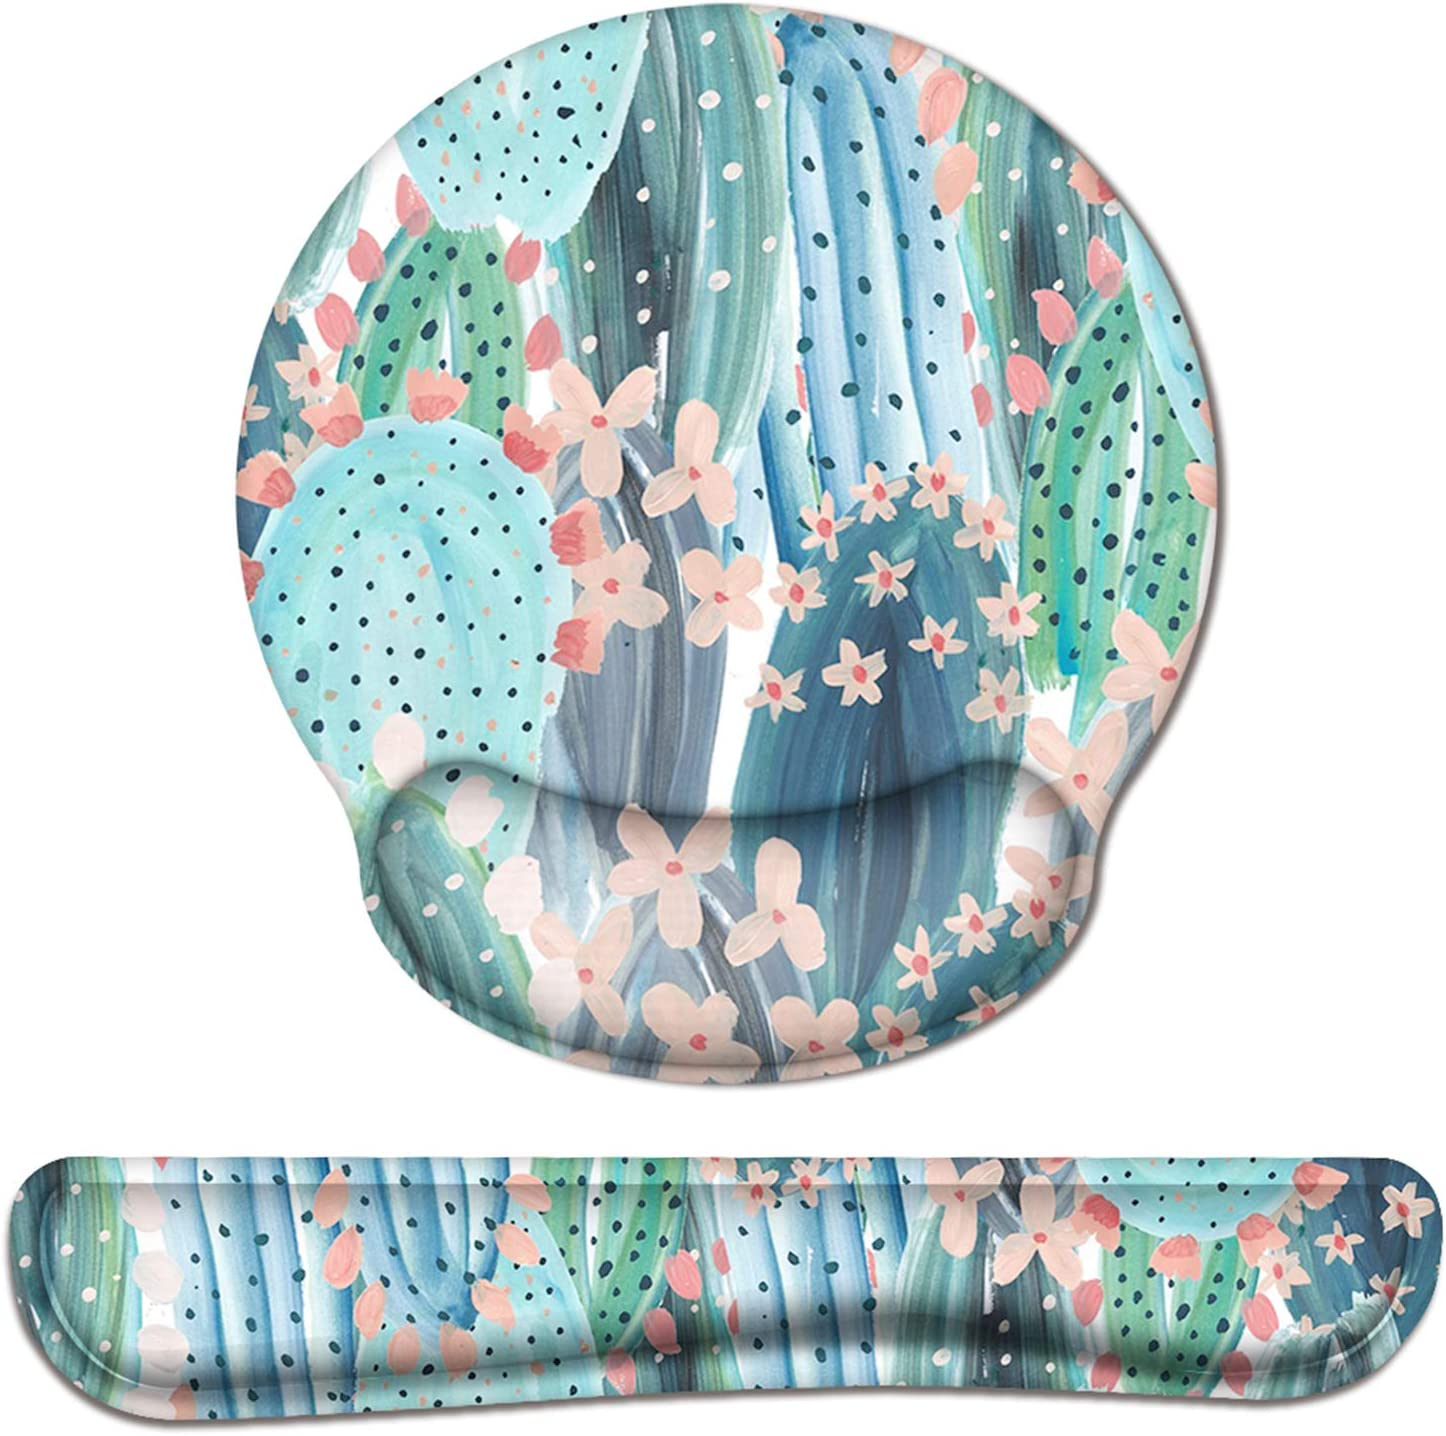 Anyshock Keyboard Wrist Rest and Ergonomic Mouse Pad with Wrist Support, Mouse Pad Set Memory Foam Filled Non Slip Base Easy Typing and Relieve Wrist Pain for Home/Office (Colorful Cactus)